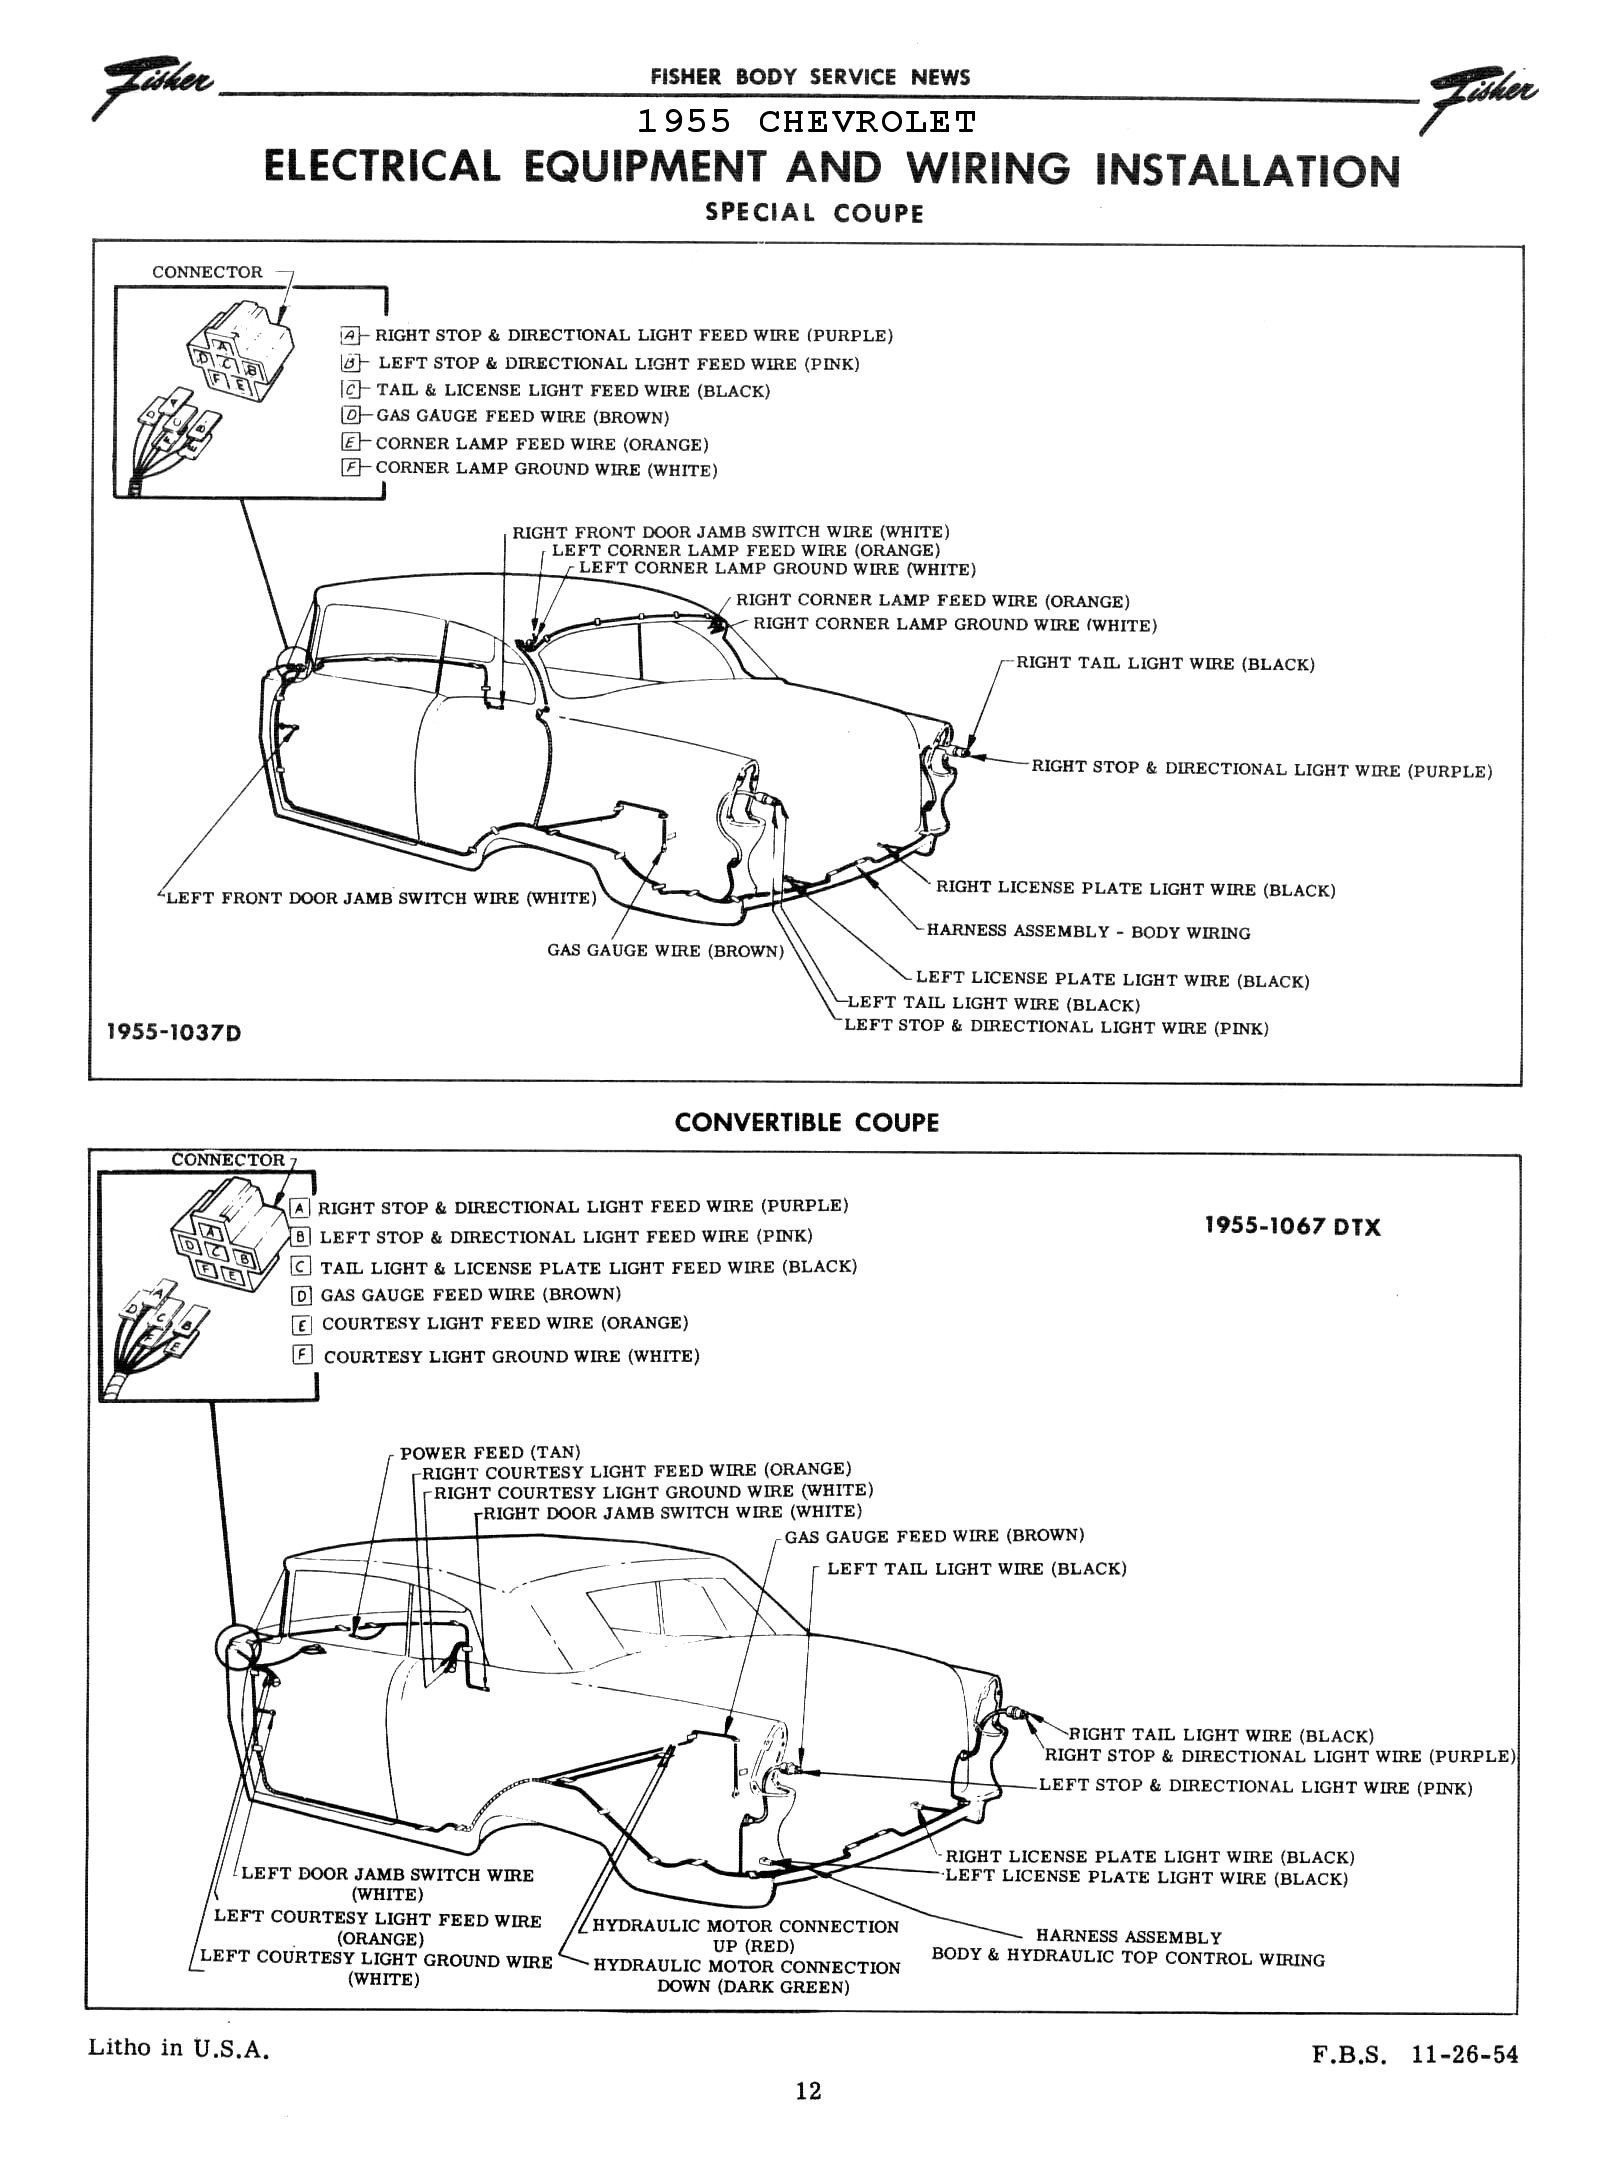 Chevy Wiring Diagrams Exterior Code Free Download Pictures 1955 Body Diagram 3